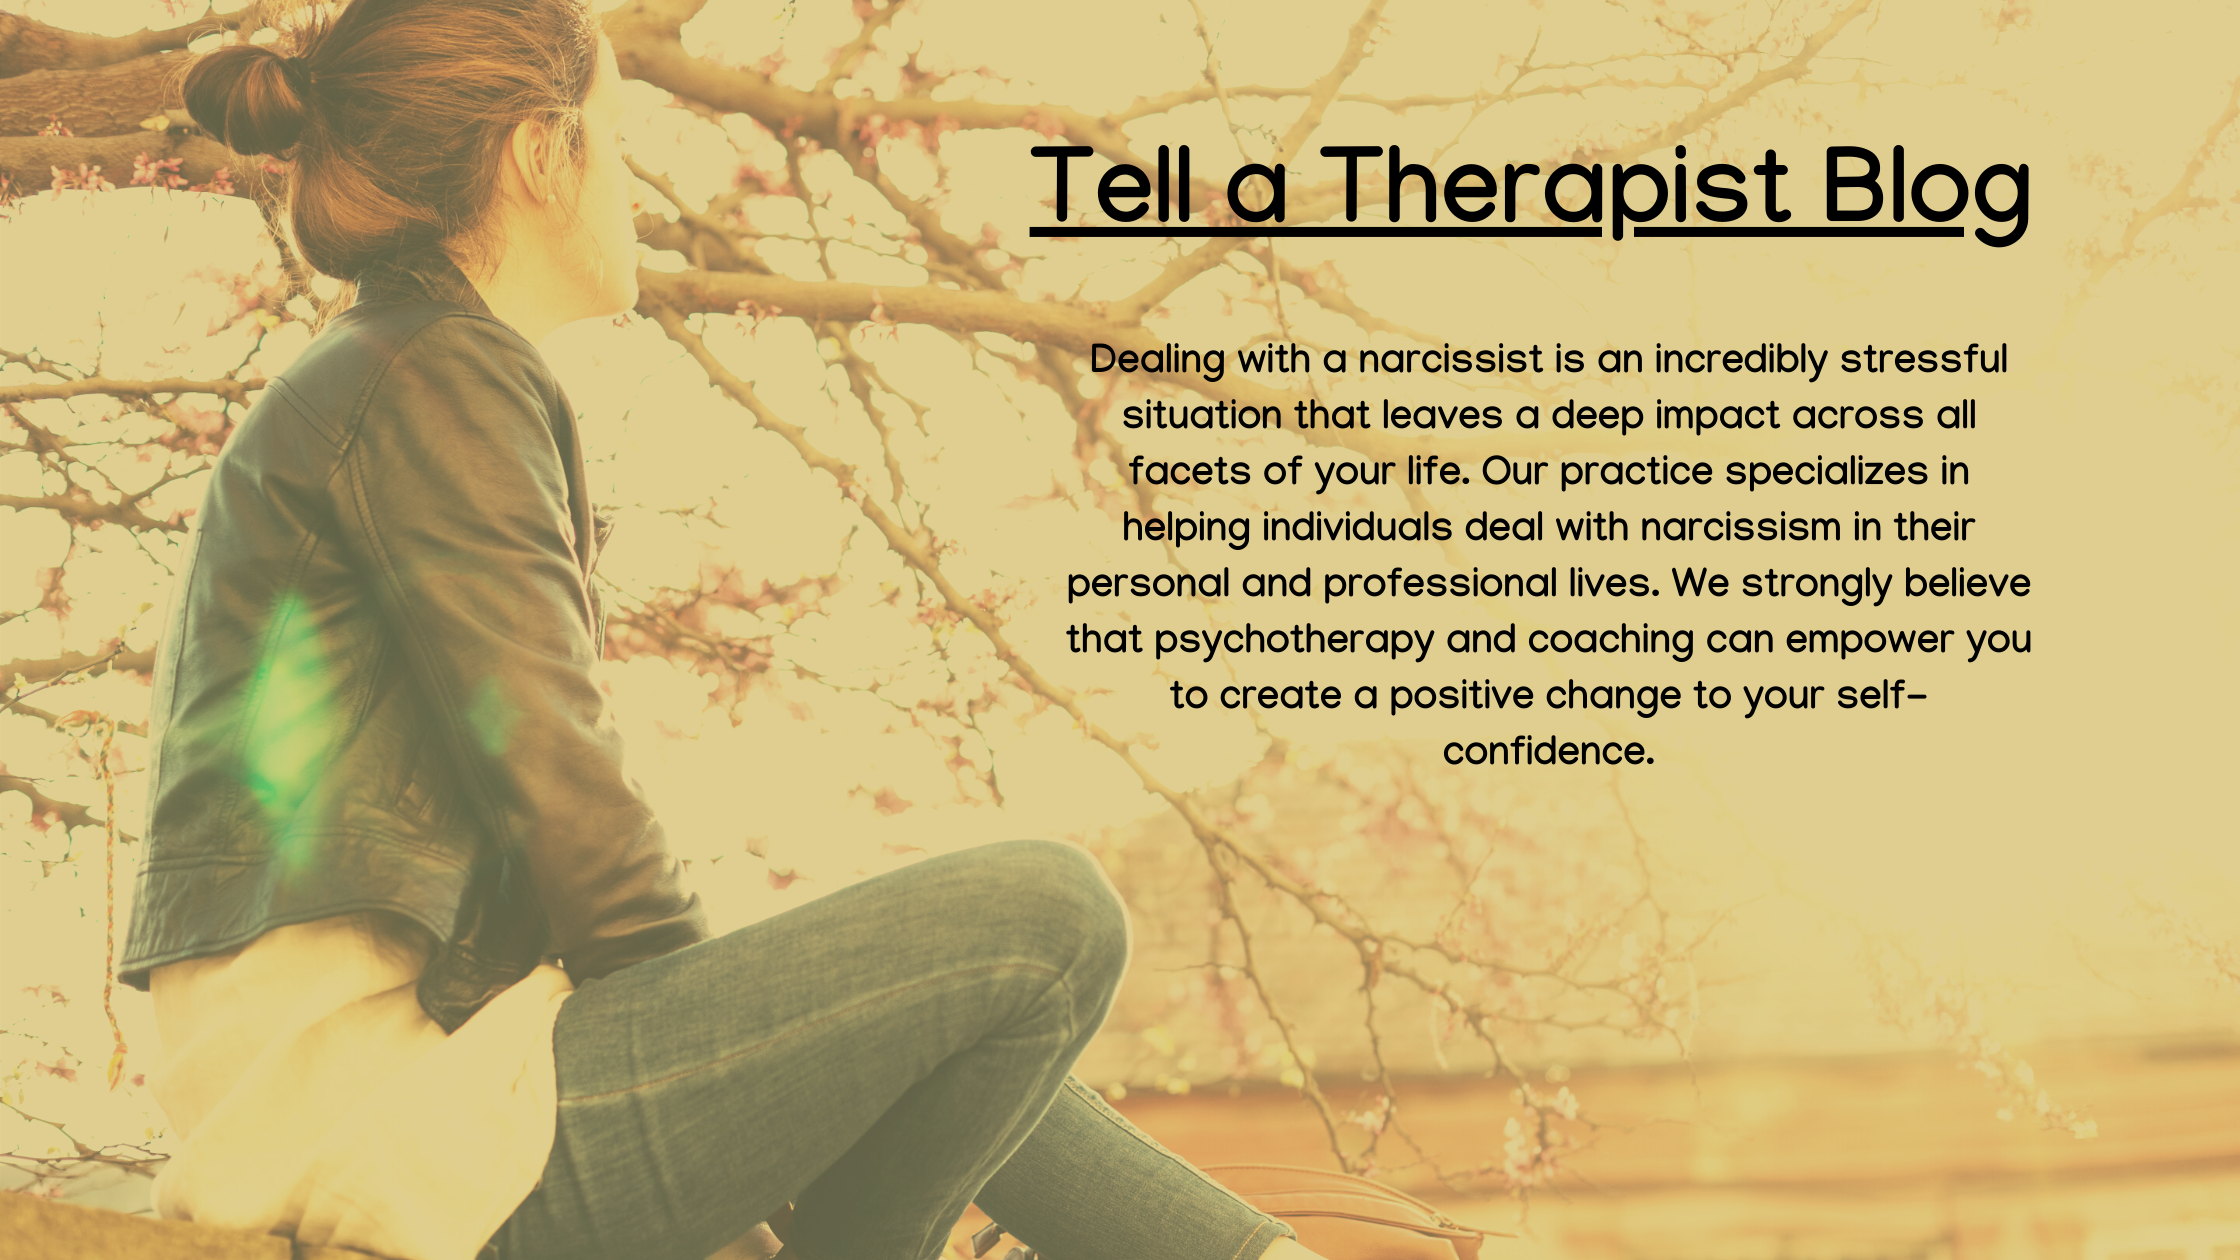 Tell a therapist blog link